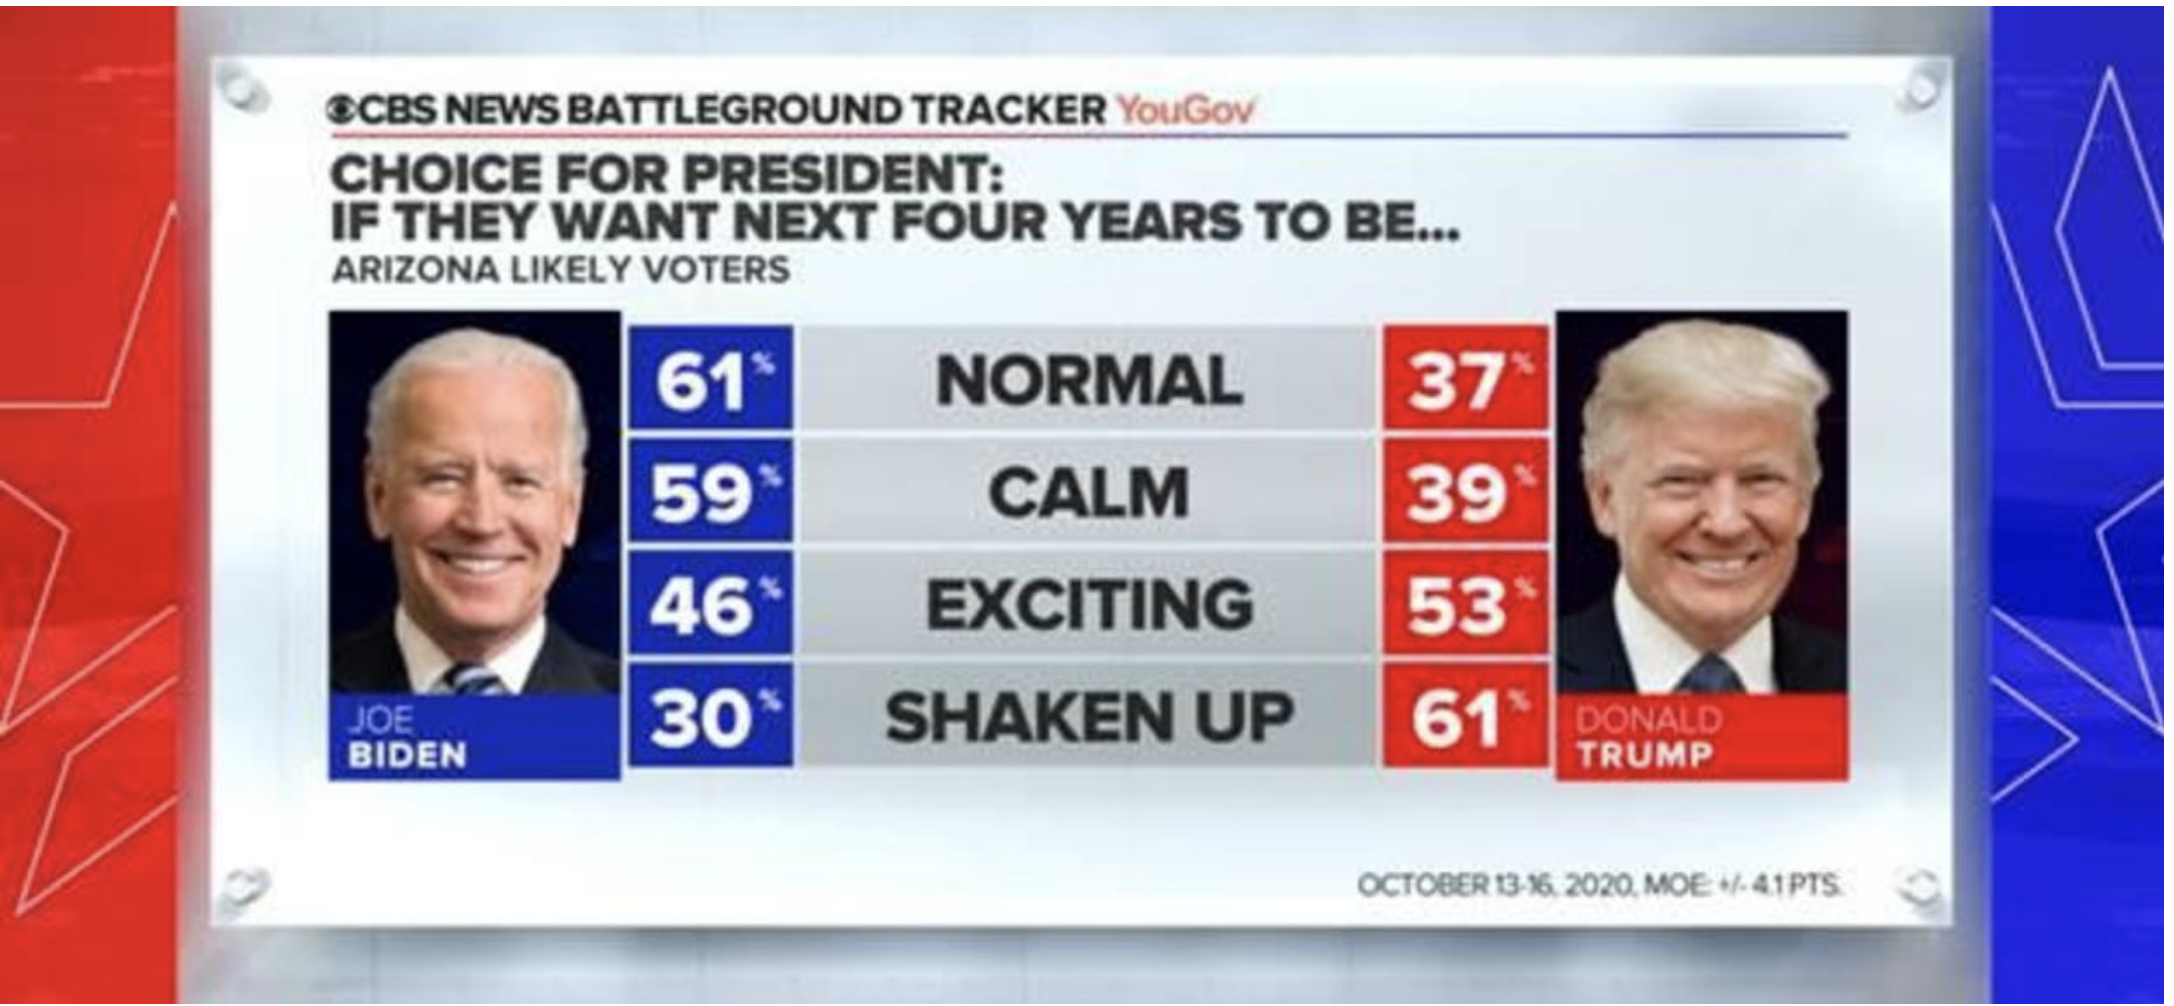 Screen-Shot-2020-10-18-at-11.55.47-AM Updated 'Swing State' Poll Results Show Dramatic Double-Digit Gap Election 2020 Featured Politics Polls Top Stories